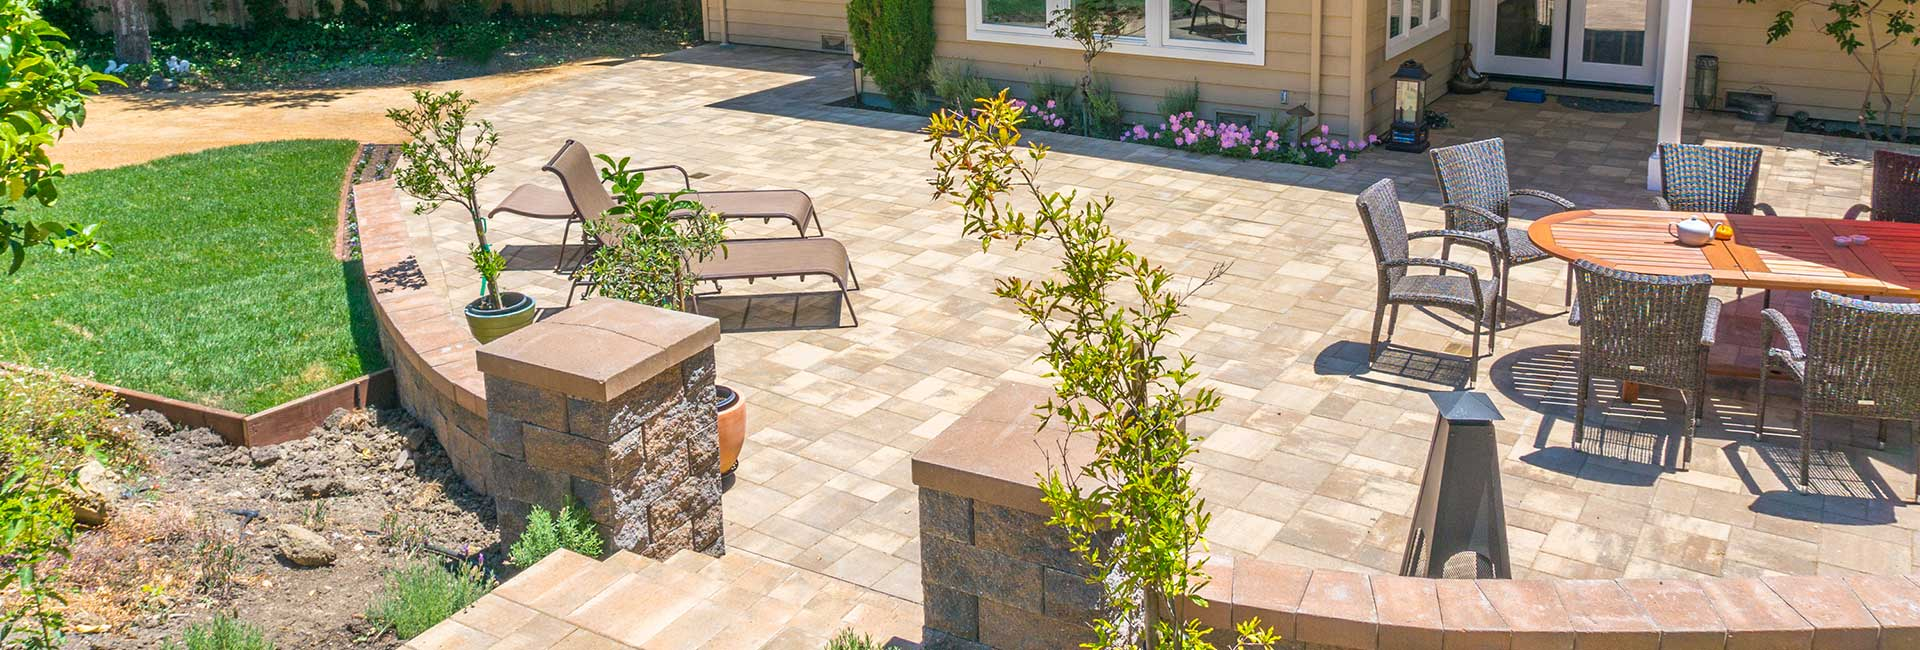 patio paver company bay area